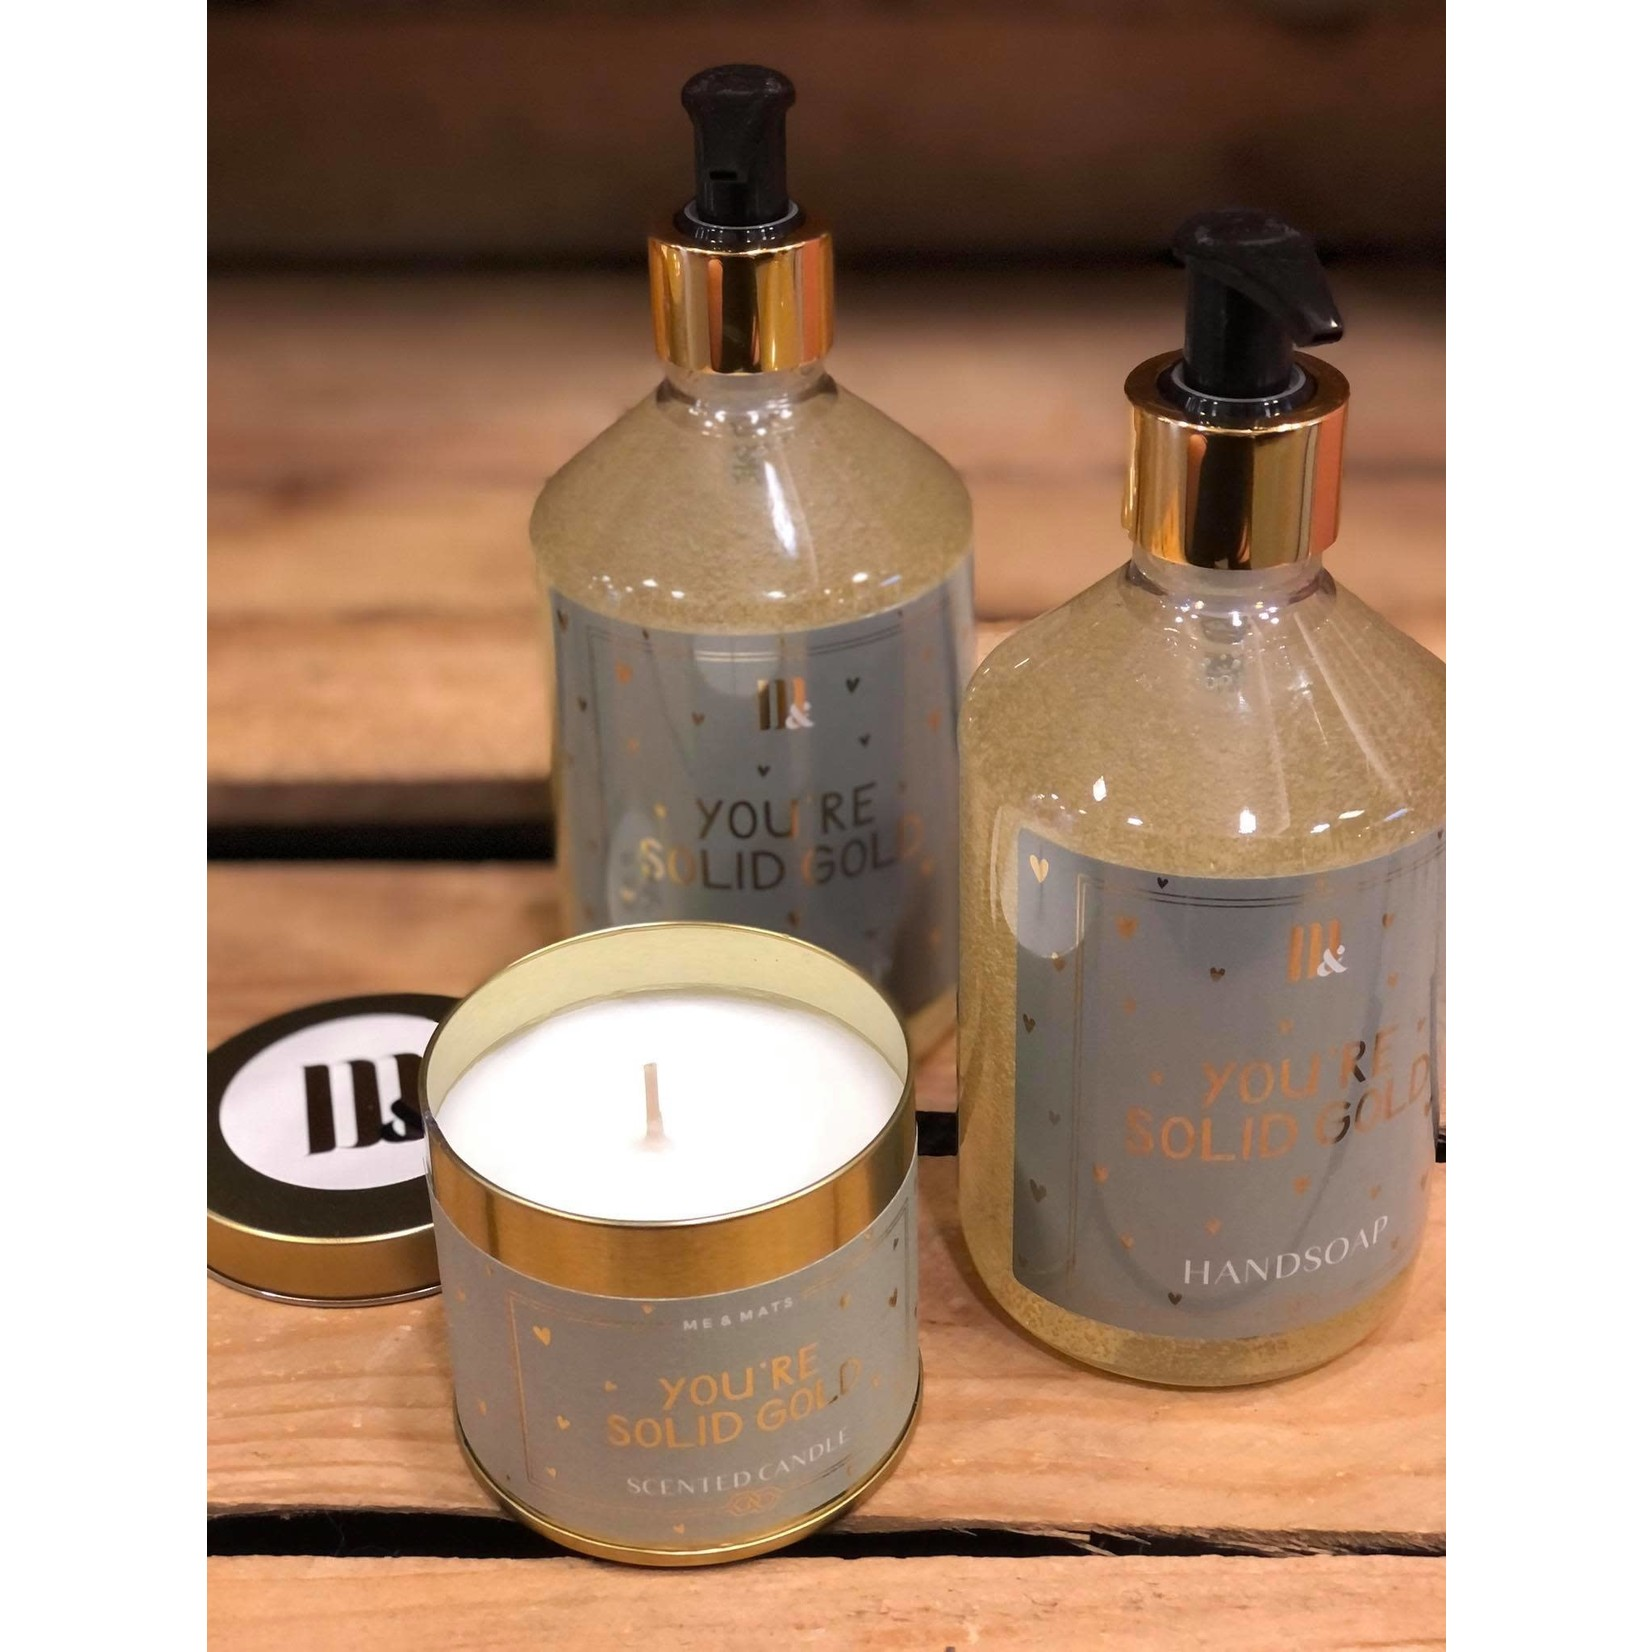 ME&MATS Hand soap - Solid Gold